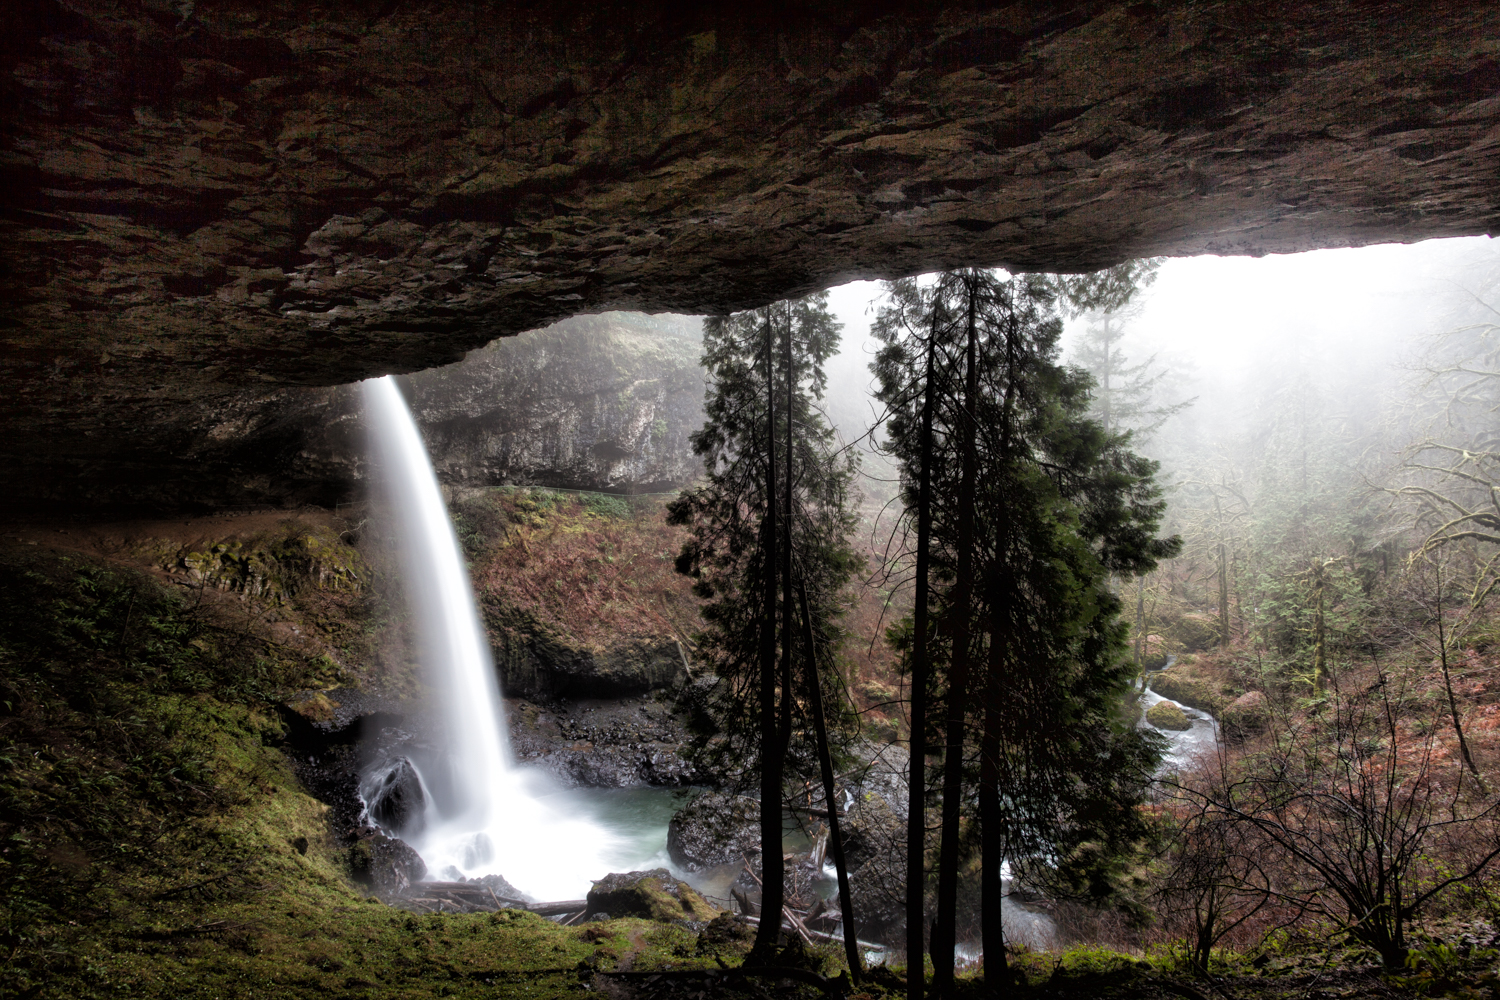 From underneath the North Falls in Silver Falls State Park outside of Salem, Oregon.